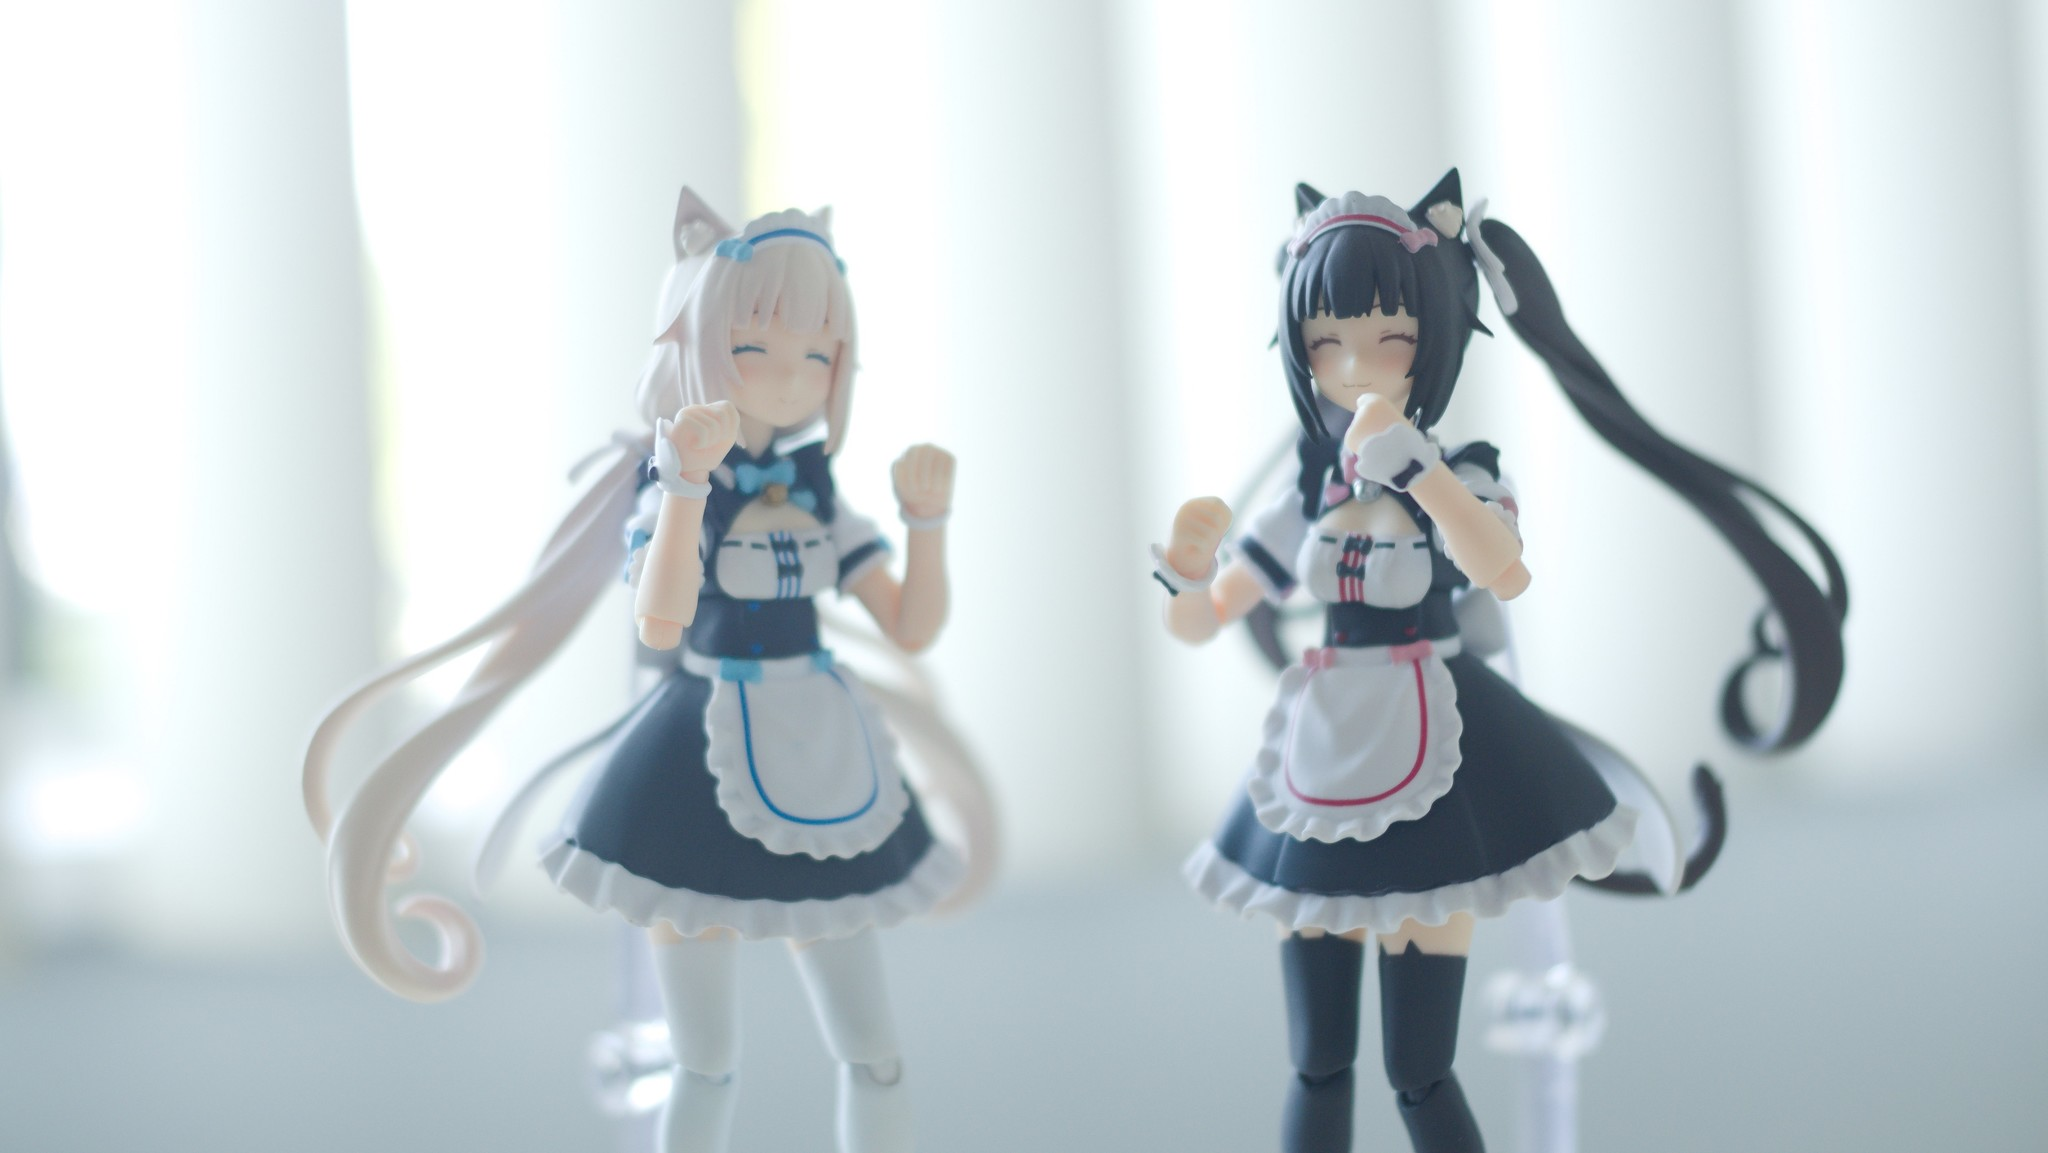 https://static.myfigurecollection.net/upload/pictures/2021/06/30/2768239.jpeg